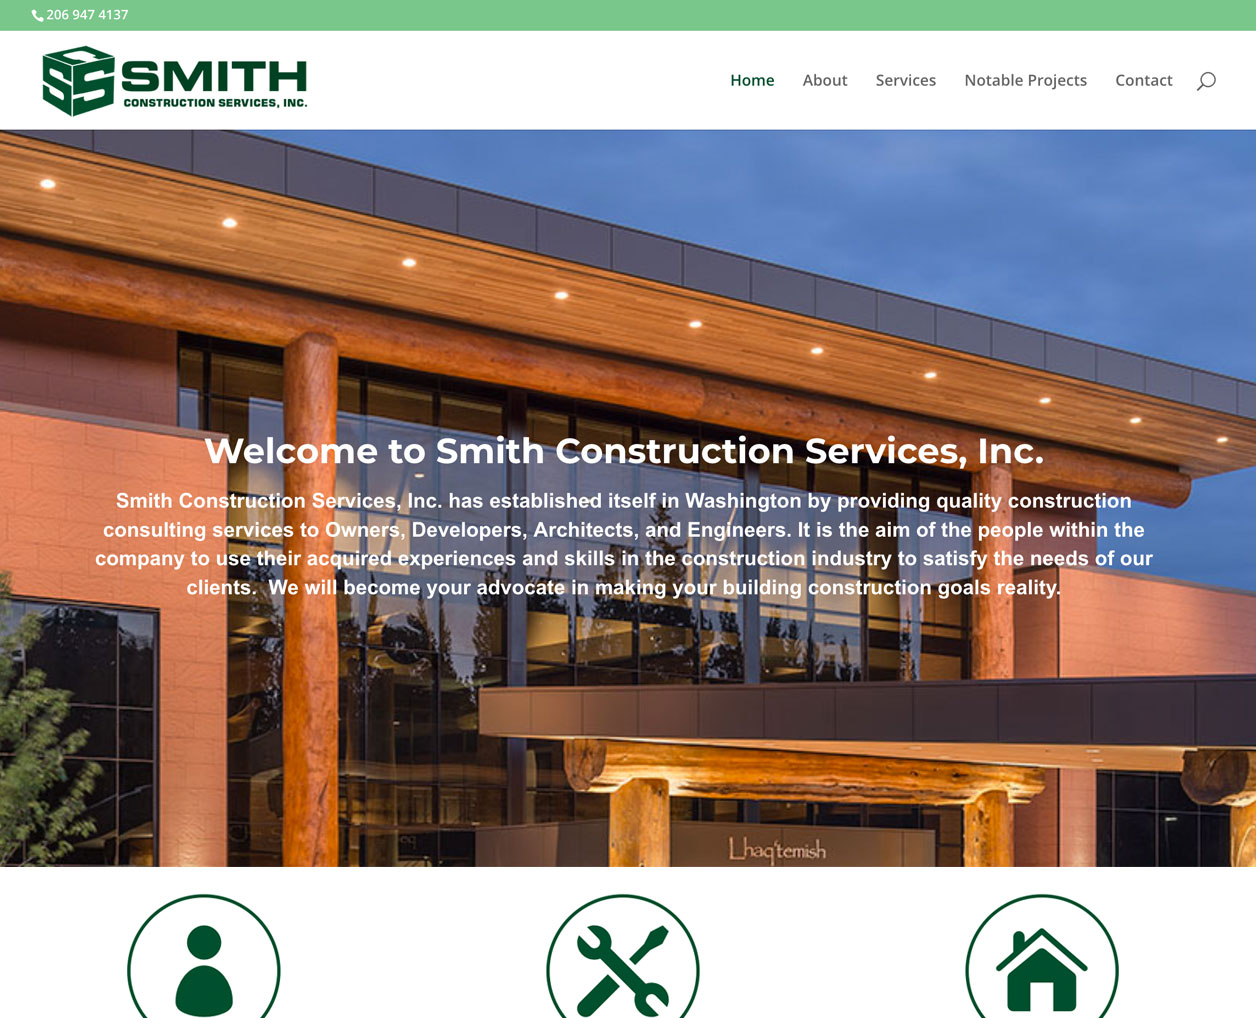 Smith Construction Services website